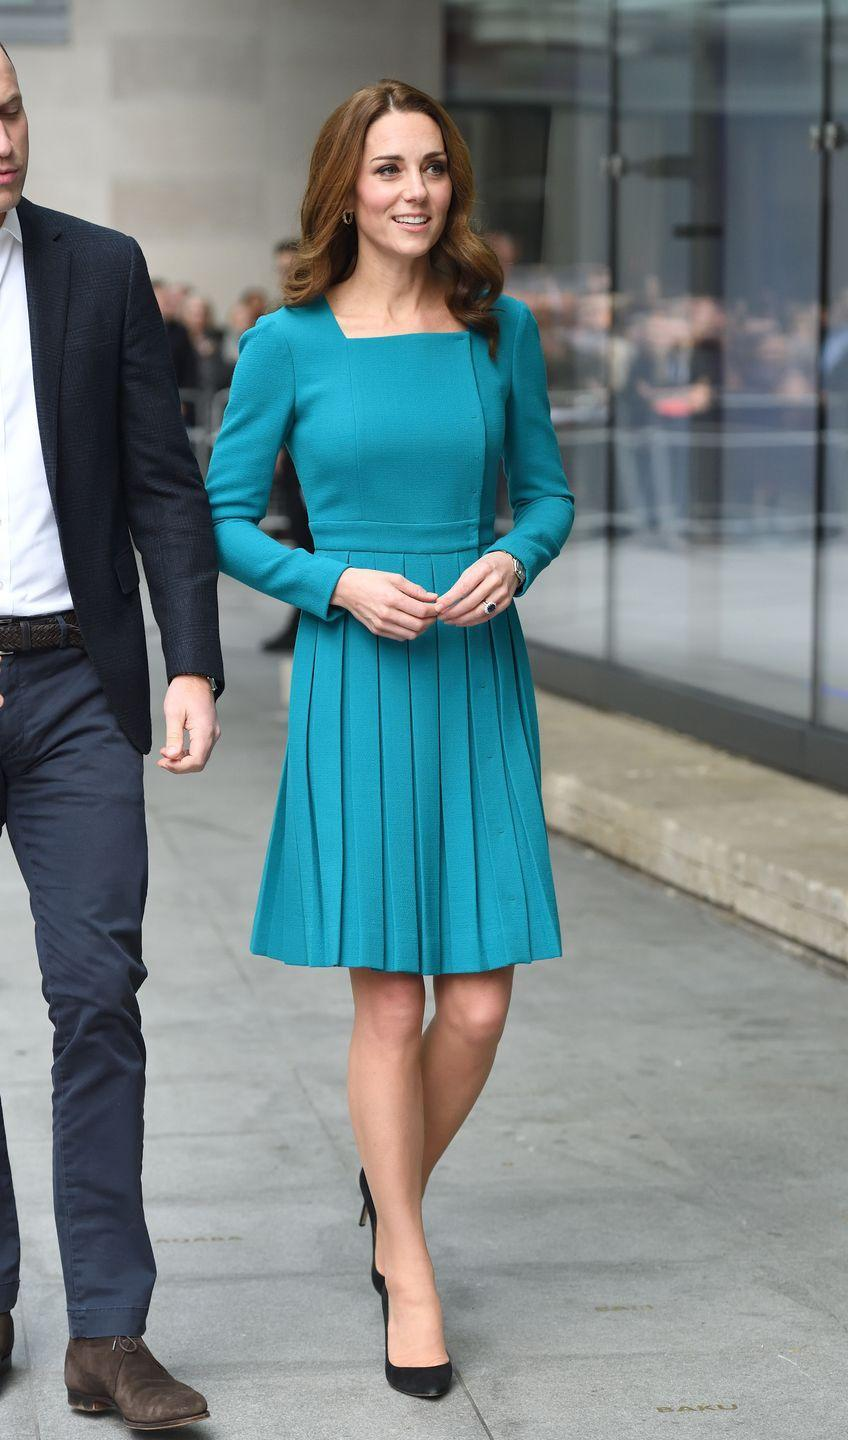 """<p>The Duke and Duchess of Cambridge visited the BBC headquarters to discuss William's Taskforce on the Prevention of Cyberbullying. Kate wore a turquoise <a href=""""https://www.modaoperandi.com/emilia-wickstead"""" rel=""""nofollow noopener"""" target=""""_blank"""" data-ylk=""""slk:Emilia Wickstead"""" class=""""link rapid-noclick-resp"""">Emilia Wickstead</a> dress, recycled from an appearance in 2014, paired with <a href=""""https://www.lkbennett.com/Occasionwear/Occasion-Shoes"""" rel=""""nofollow noopener"""" target=""""_blank"""" data-ylk=""""slk:black heels from LK Bennet"""" class=""""link rapid-noclick-resp"""">black heels from LK Bennet</a> for the visit.</p>"""